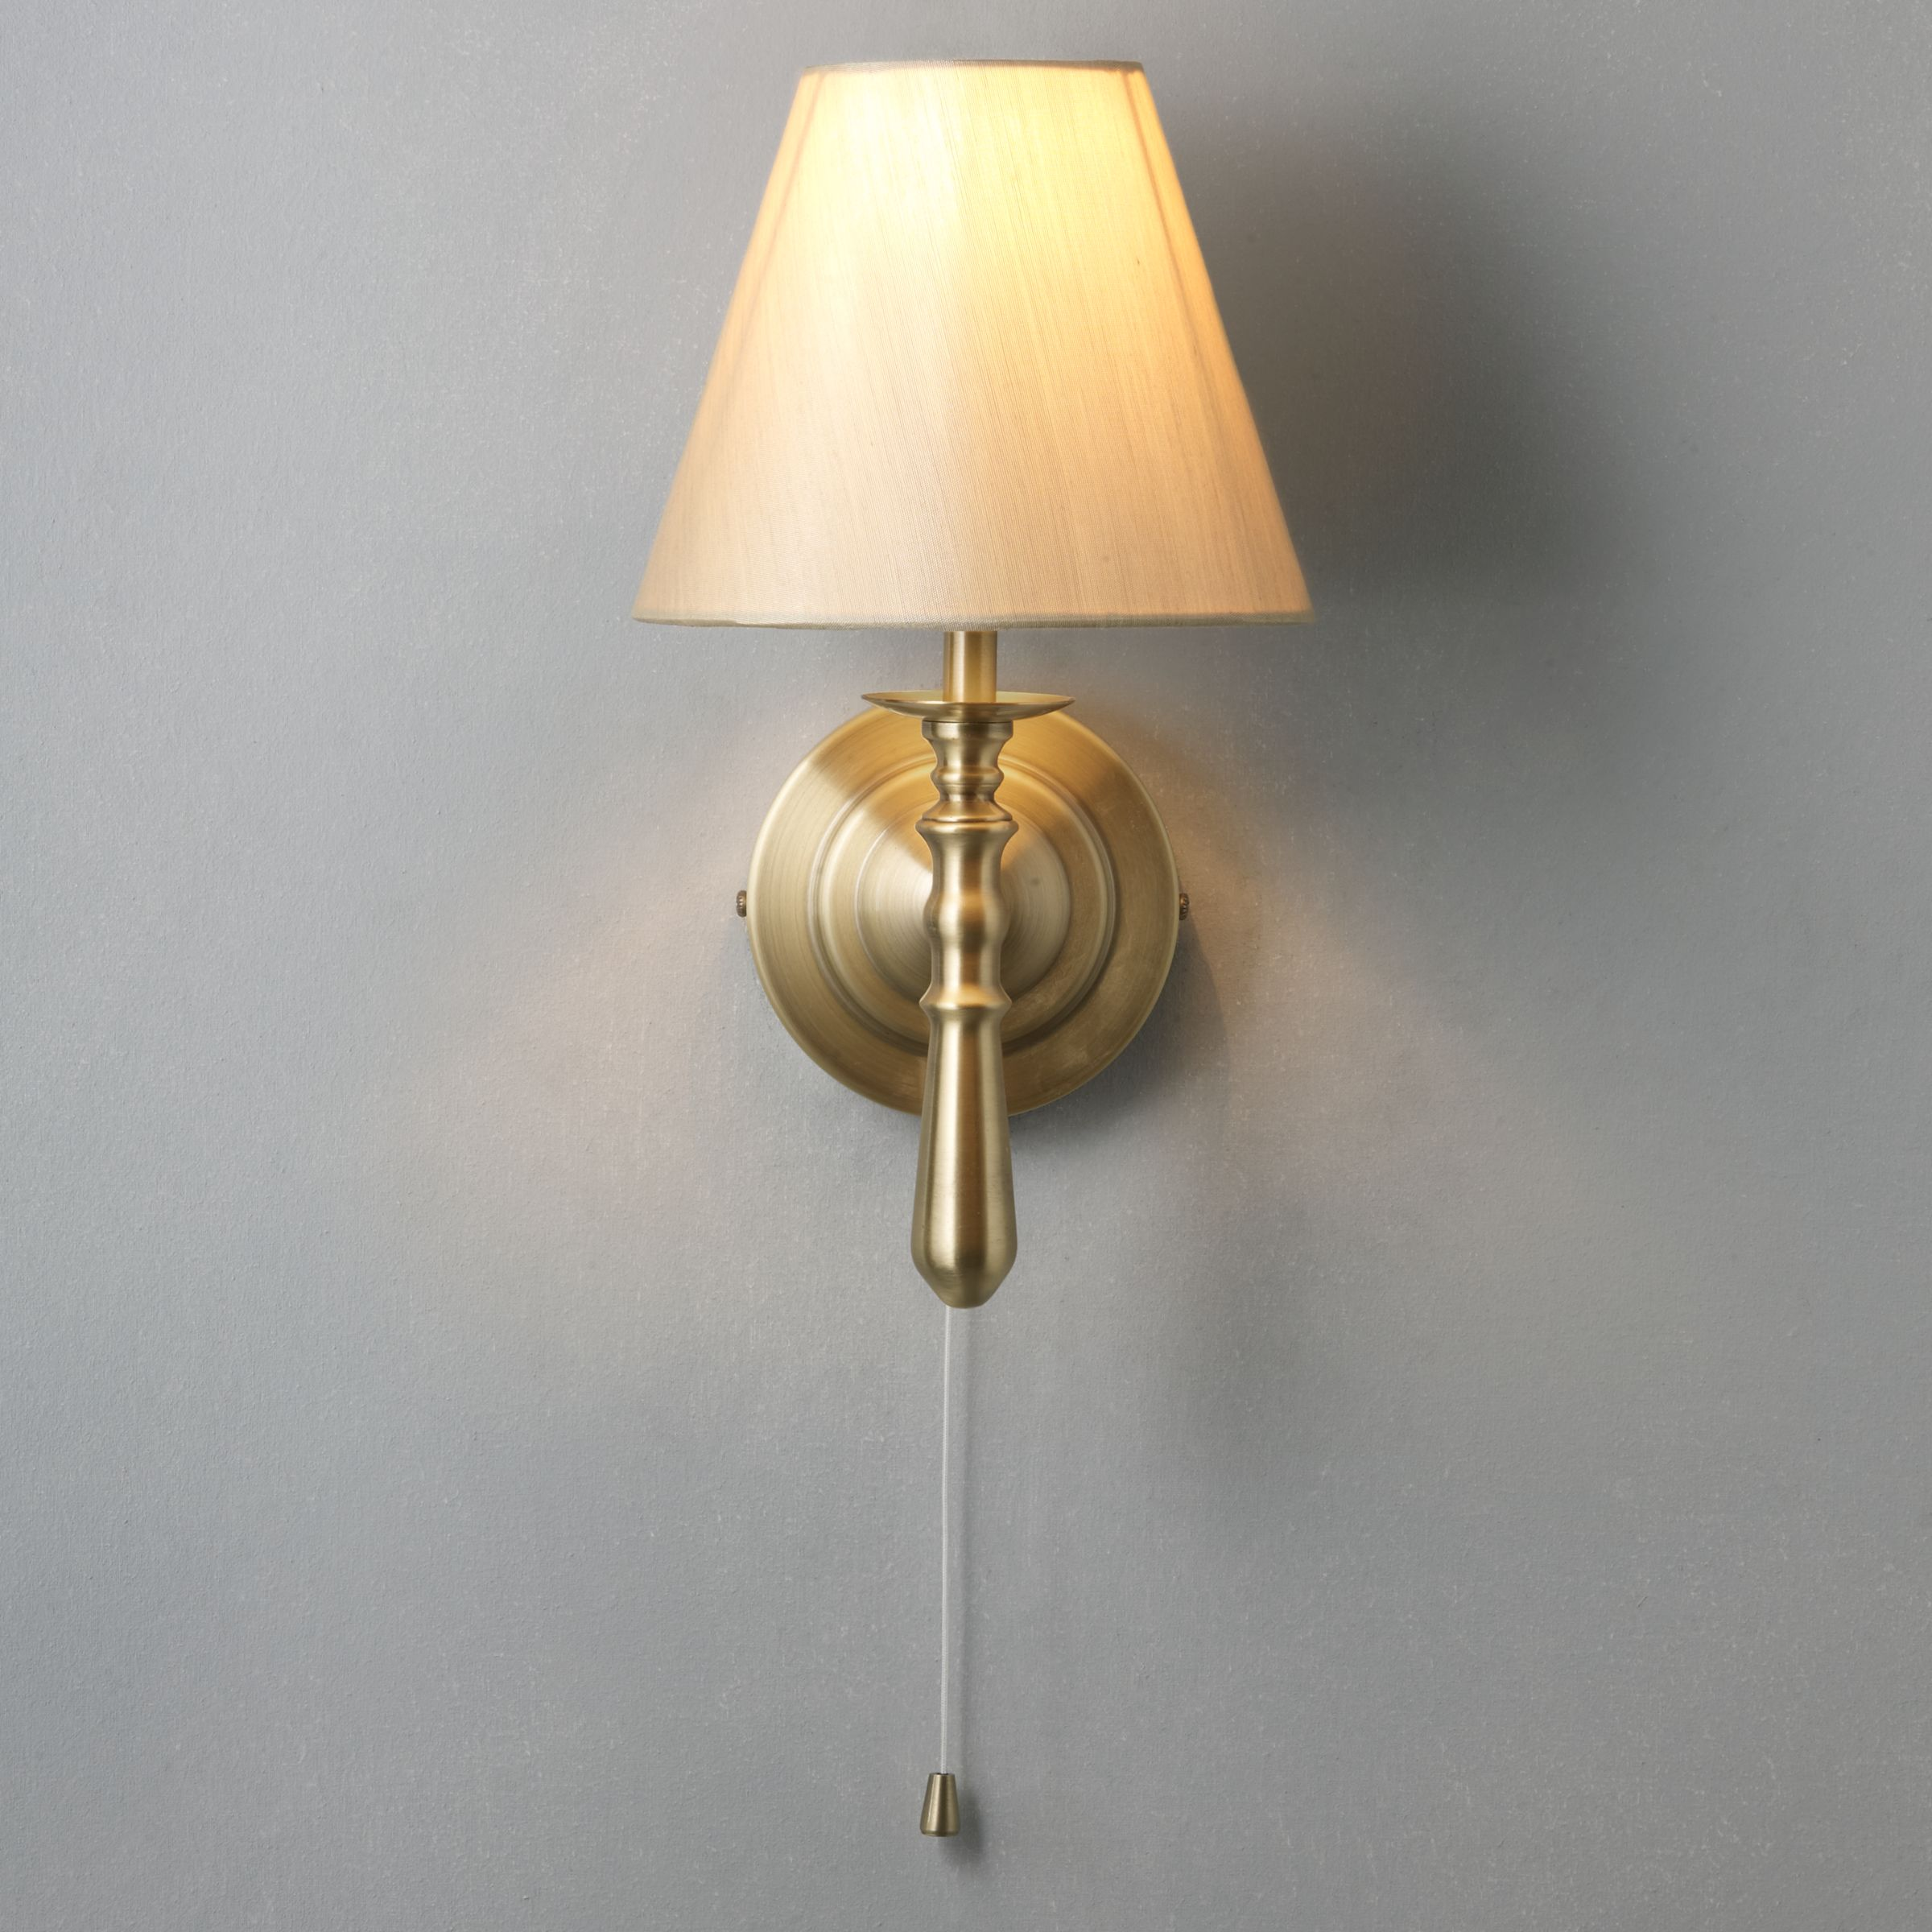 Buy John Lewis Sloane Wall Light John Lewis